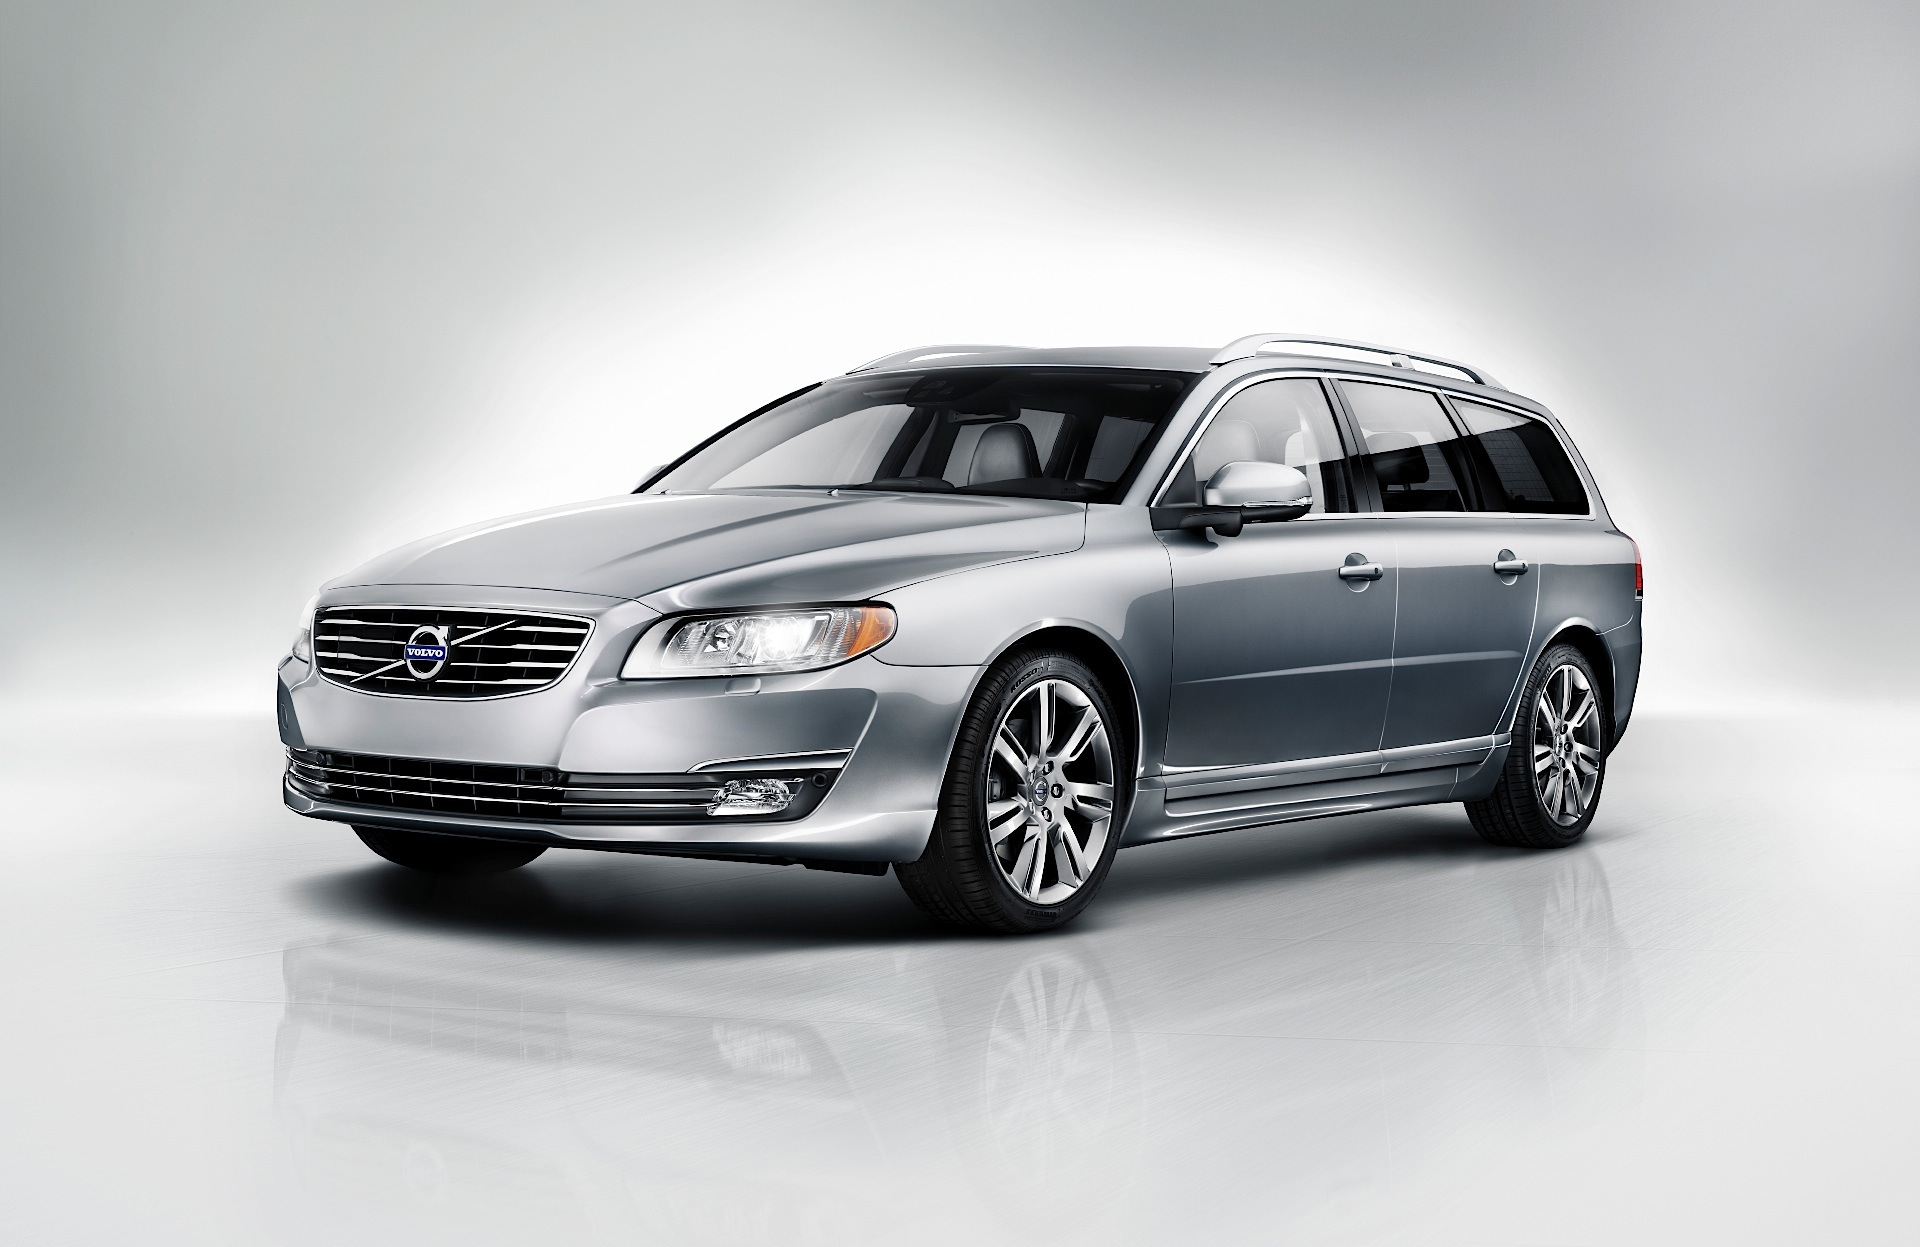 volvo v70 specs photos 2007 2008 2009 2010 2011 2012 2013 2014 2015 2016. Black Bedroom Furniture Sets. Home Design Ideas